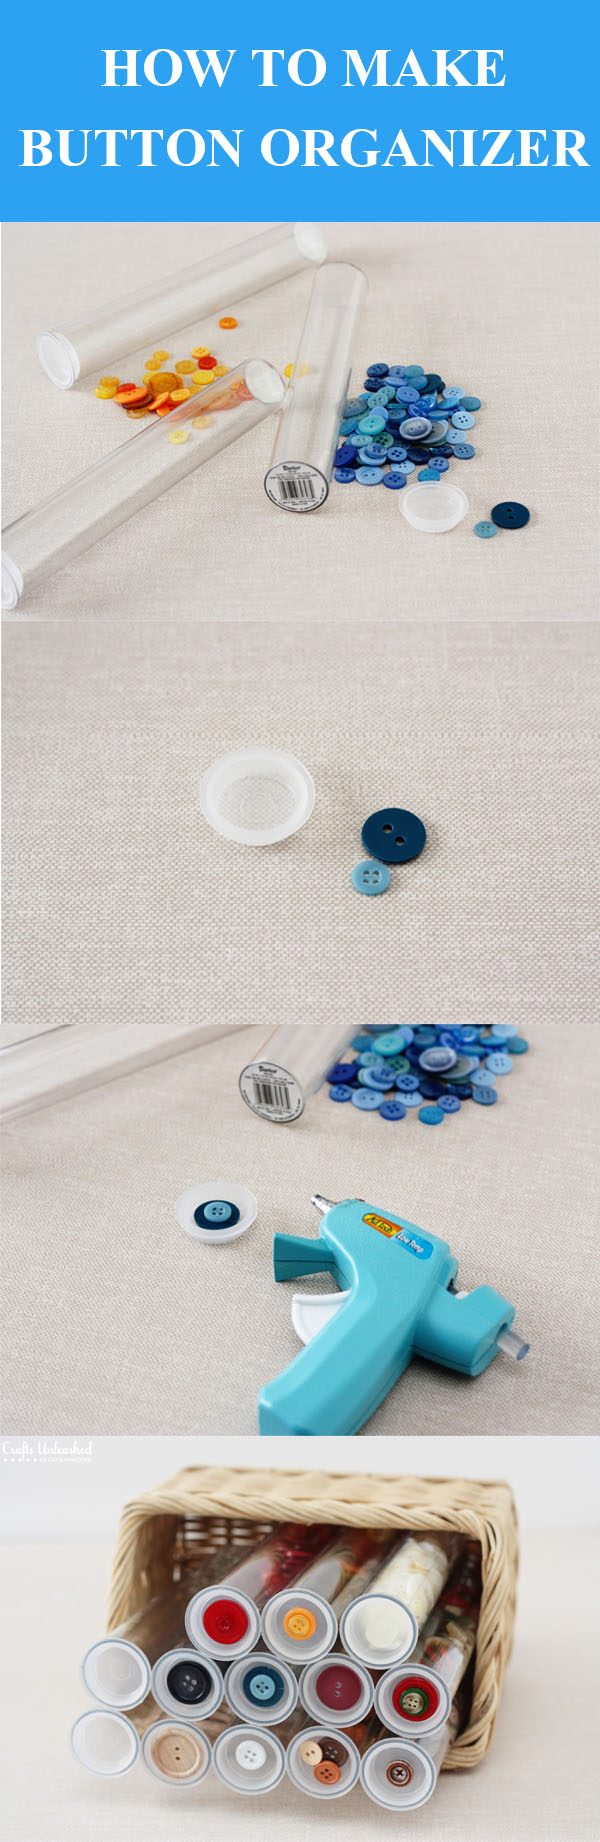 DIY Button Organizer